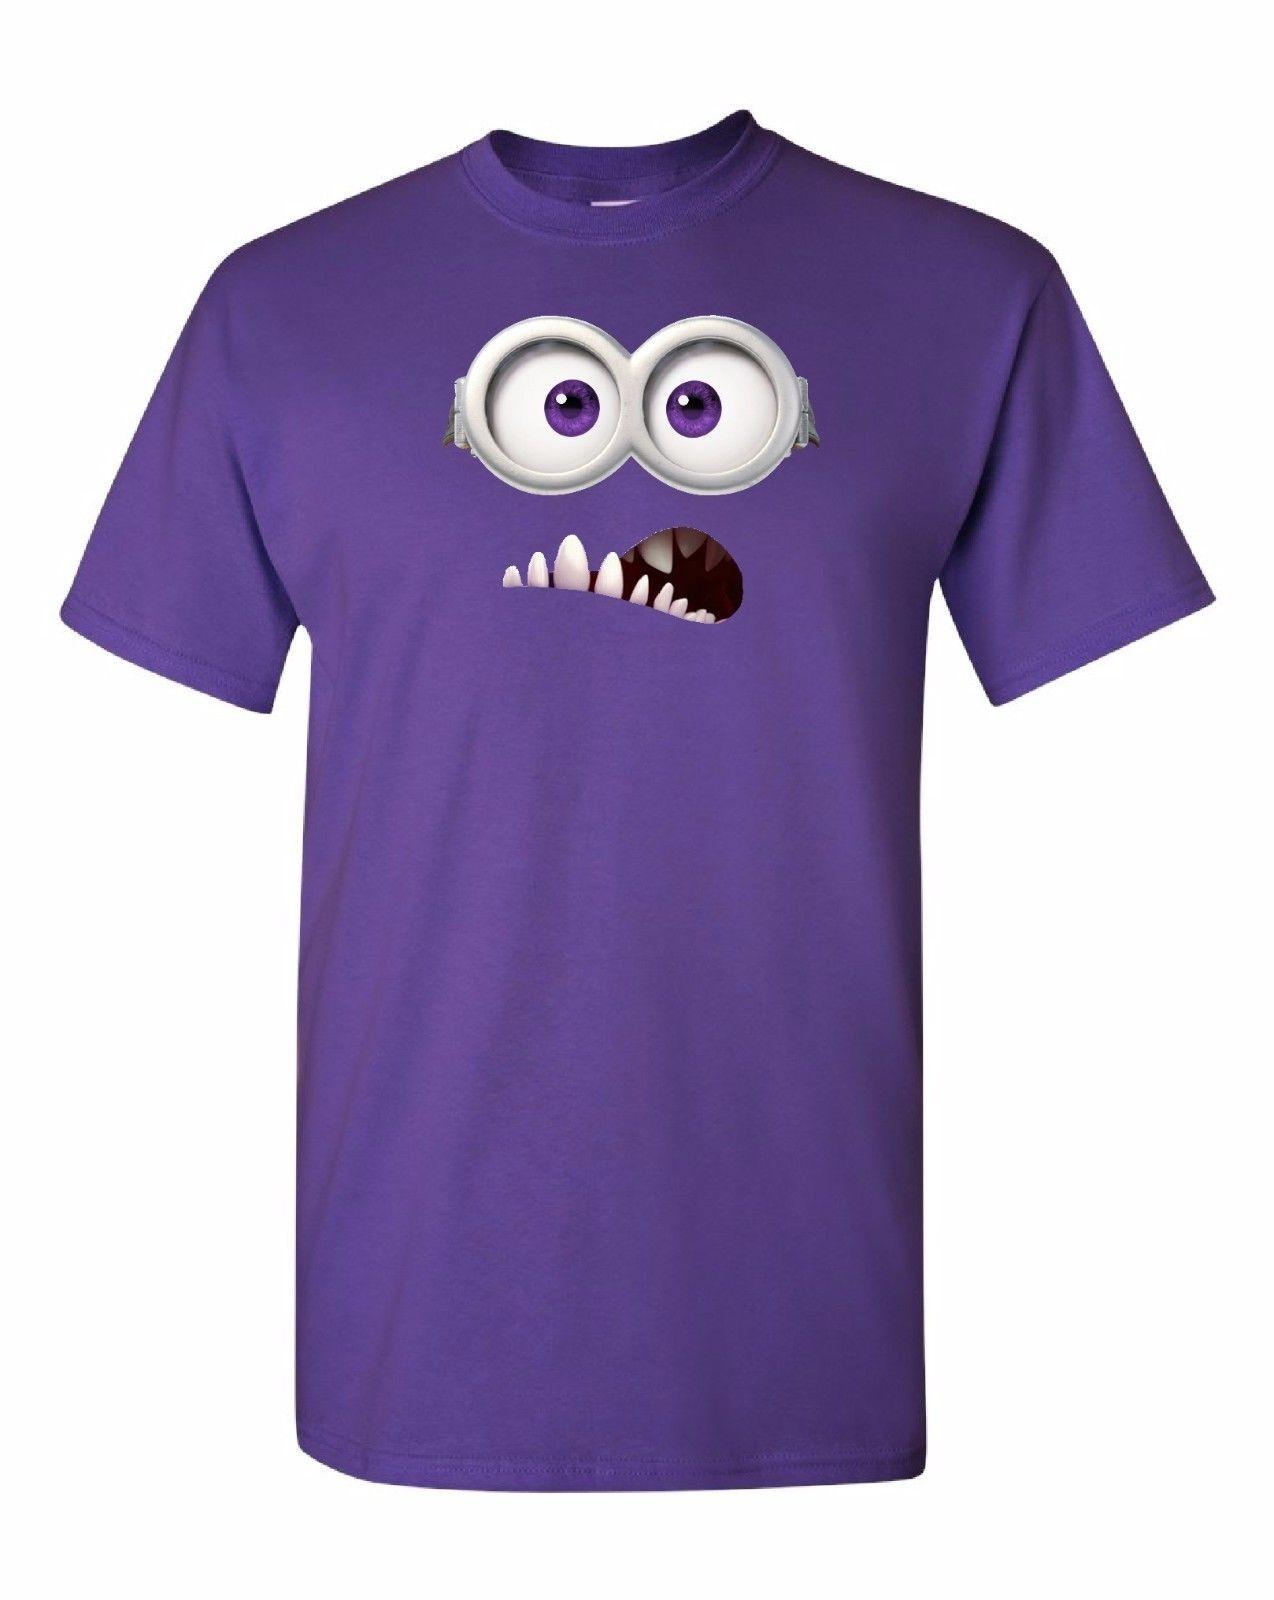 evil minion eyes wideopen t shirt 100 cotton tee by bmf apparel